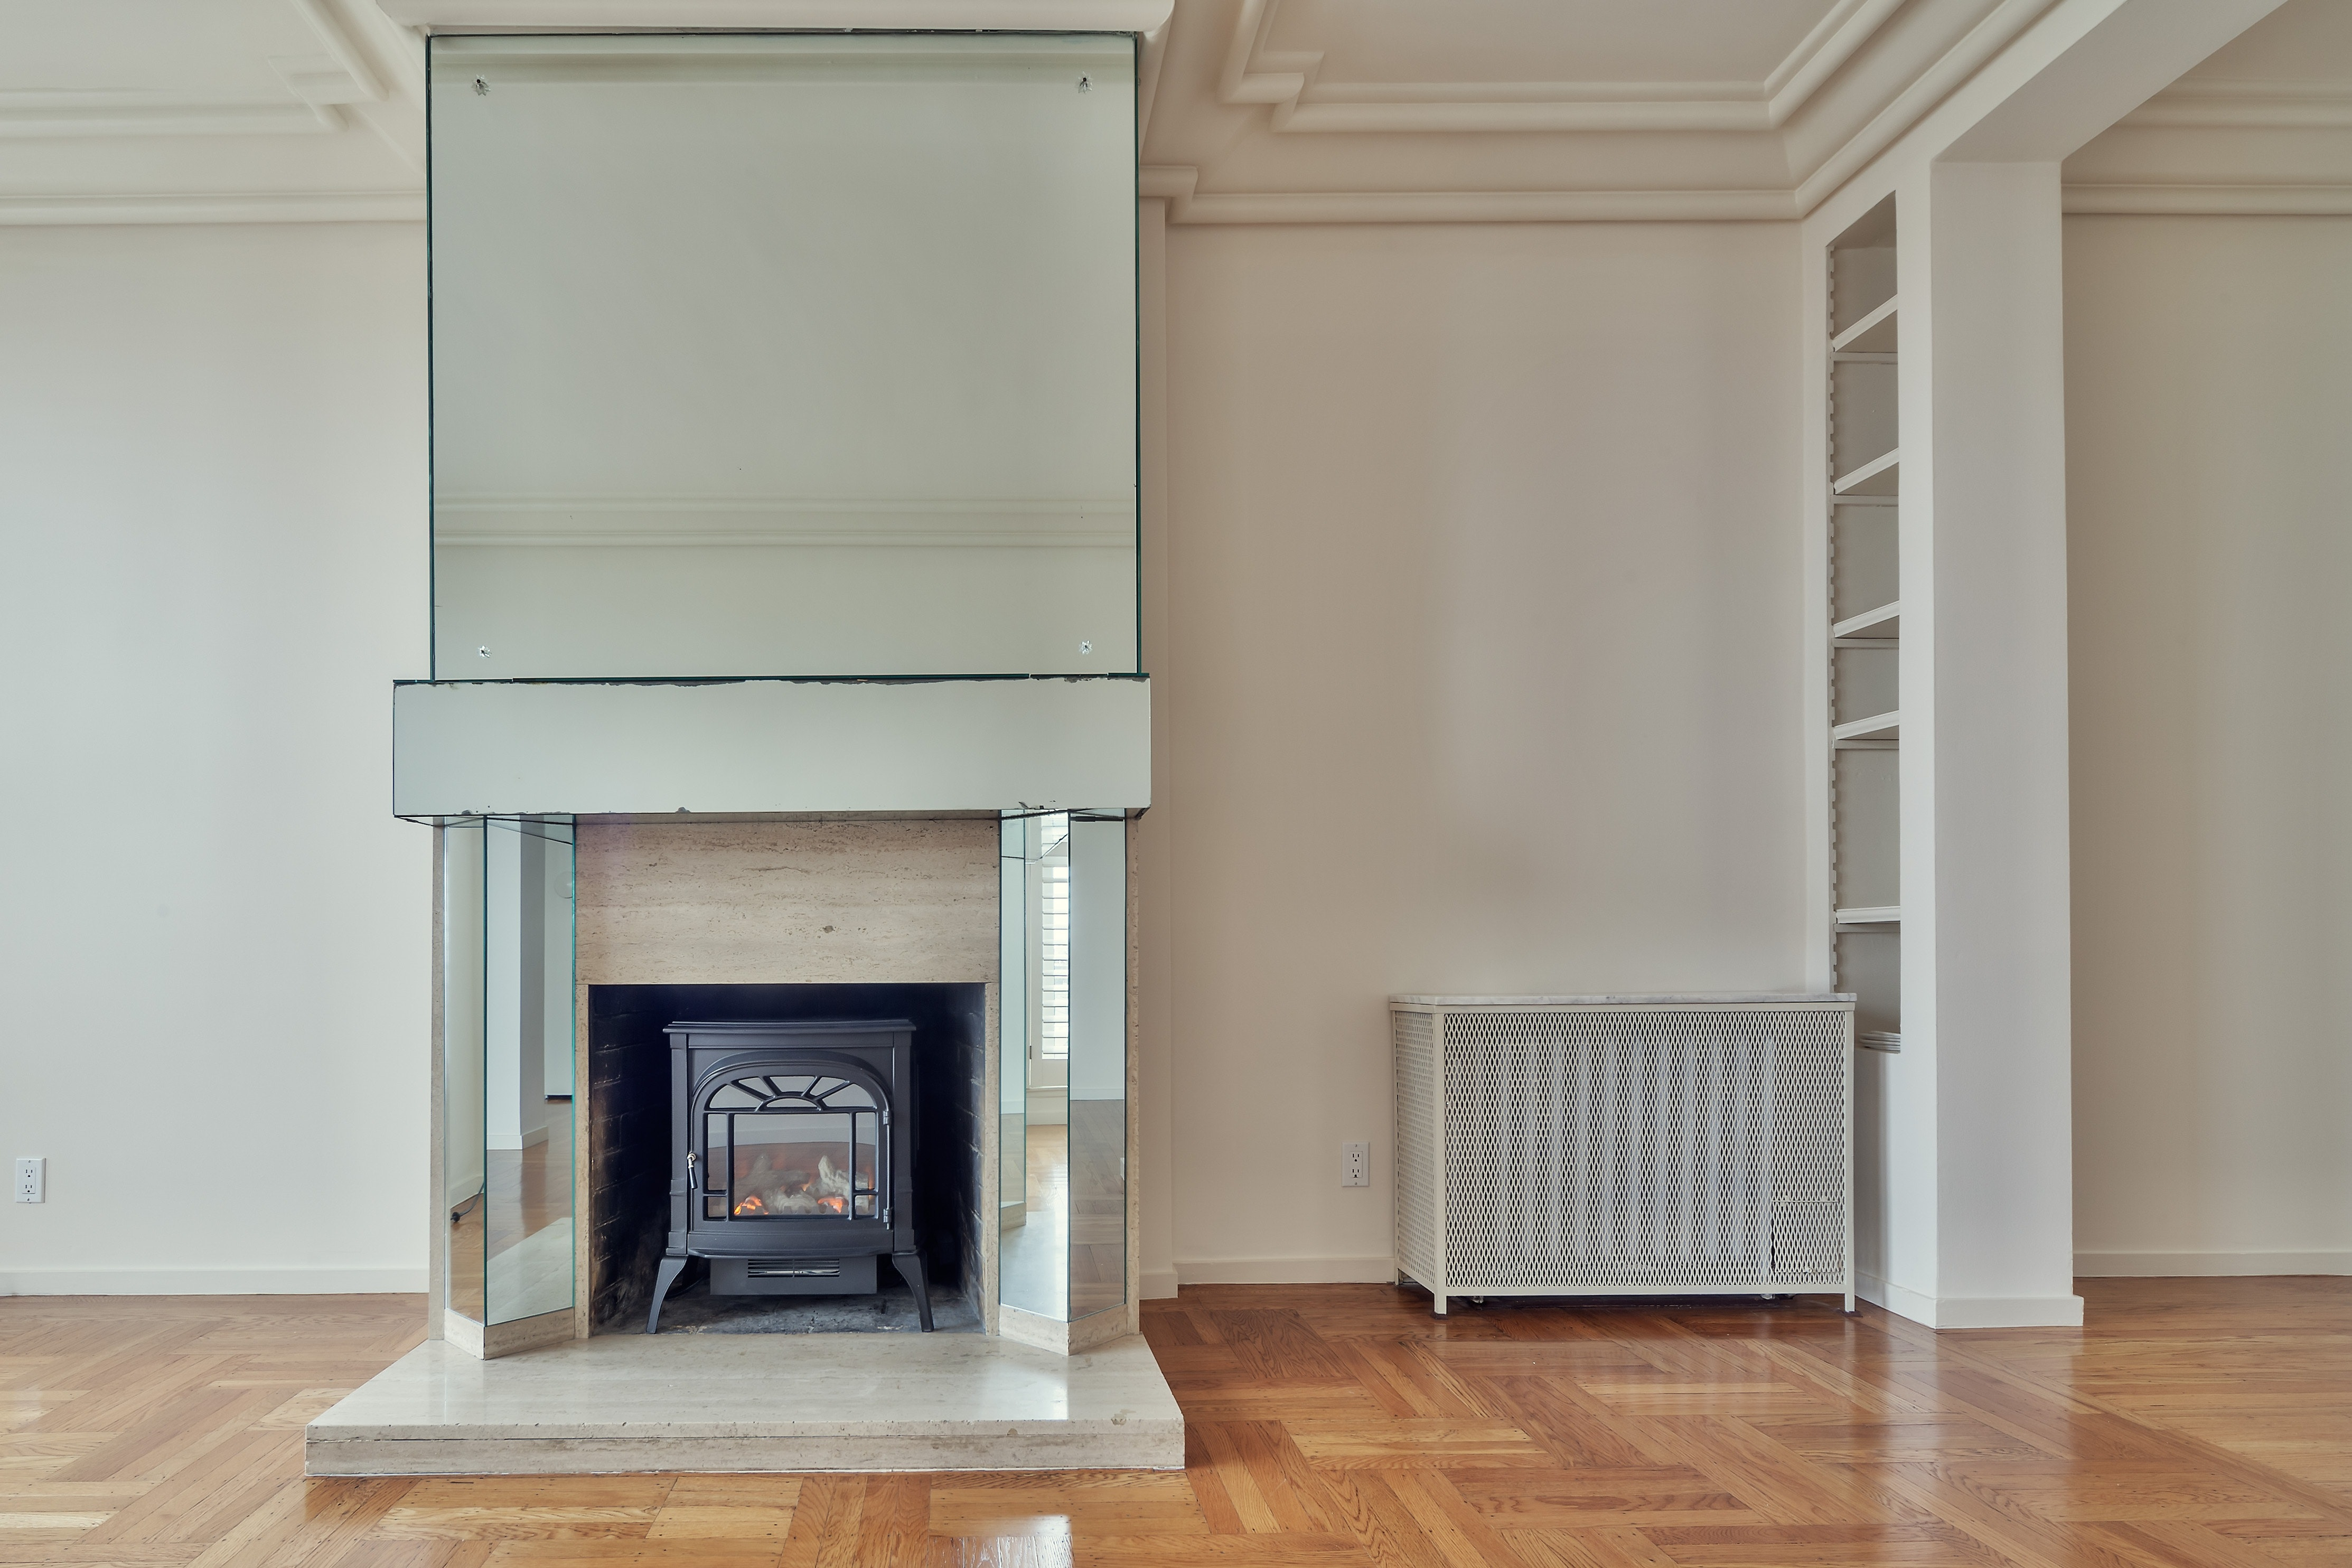 Empty living room with fireplace.